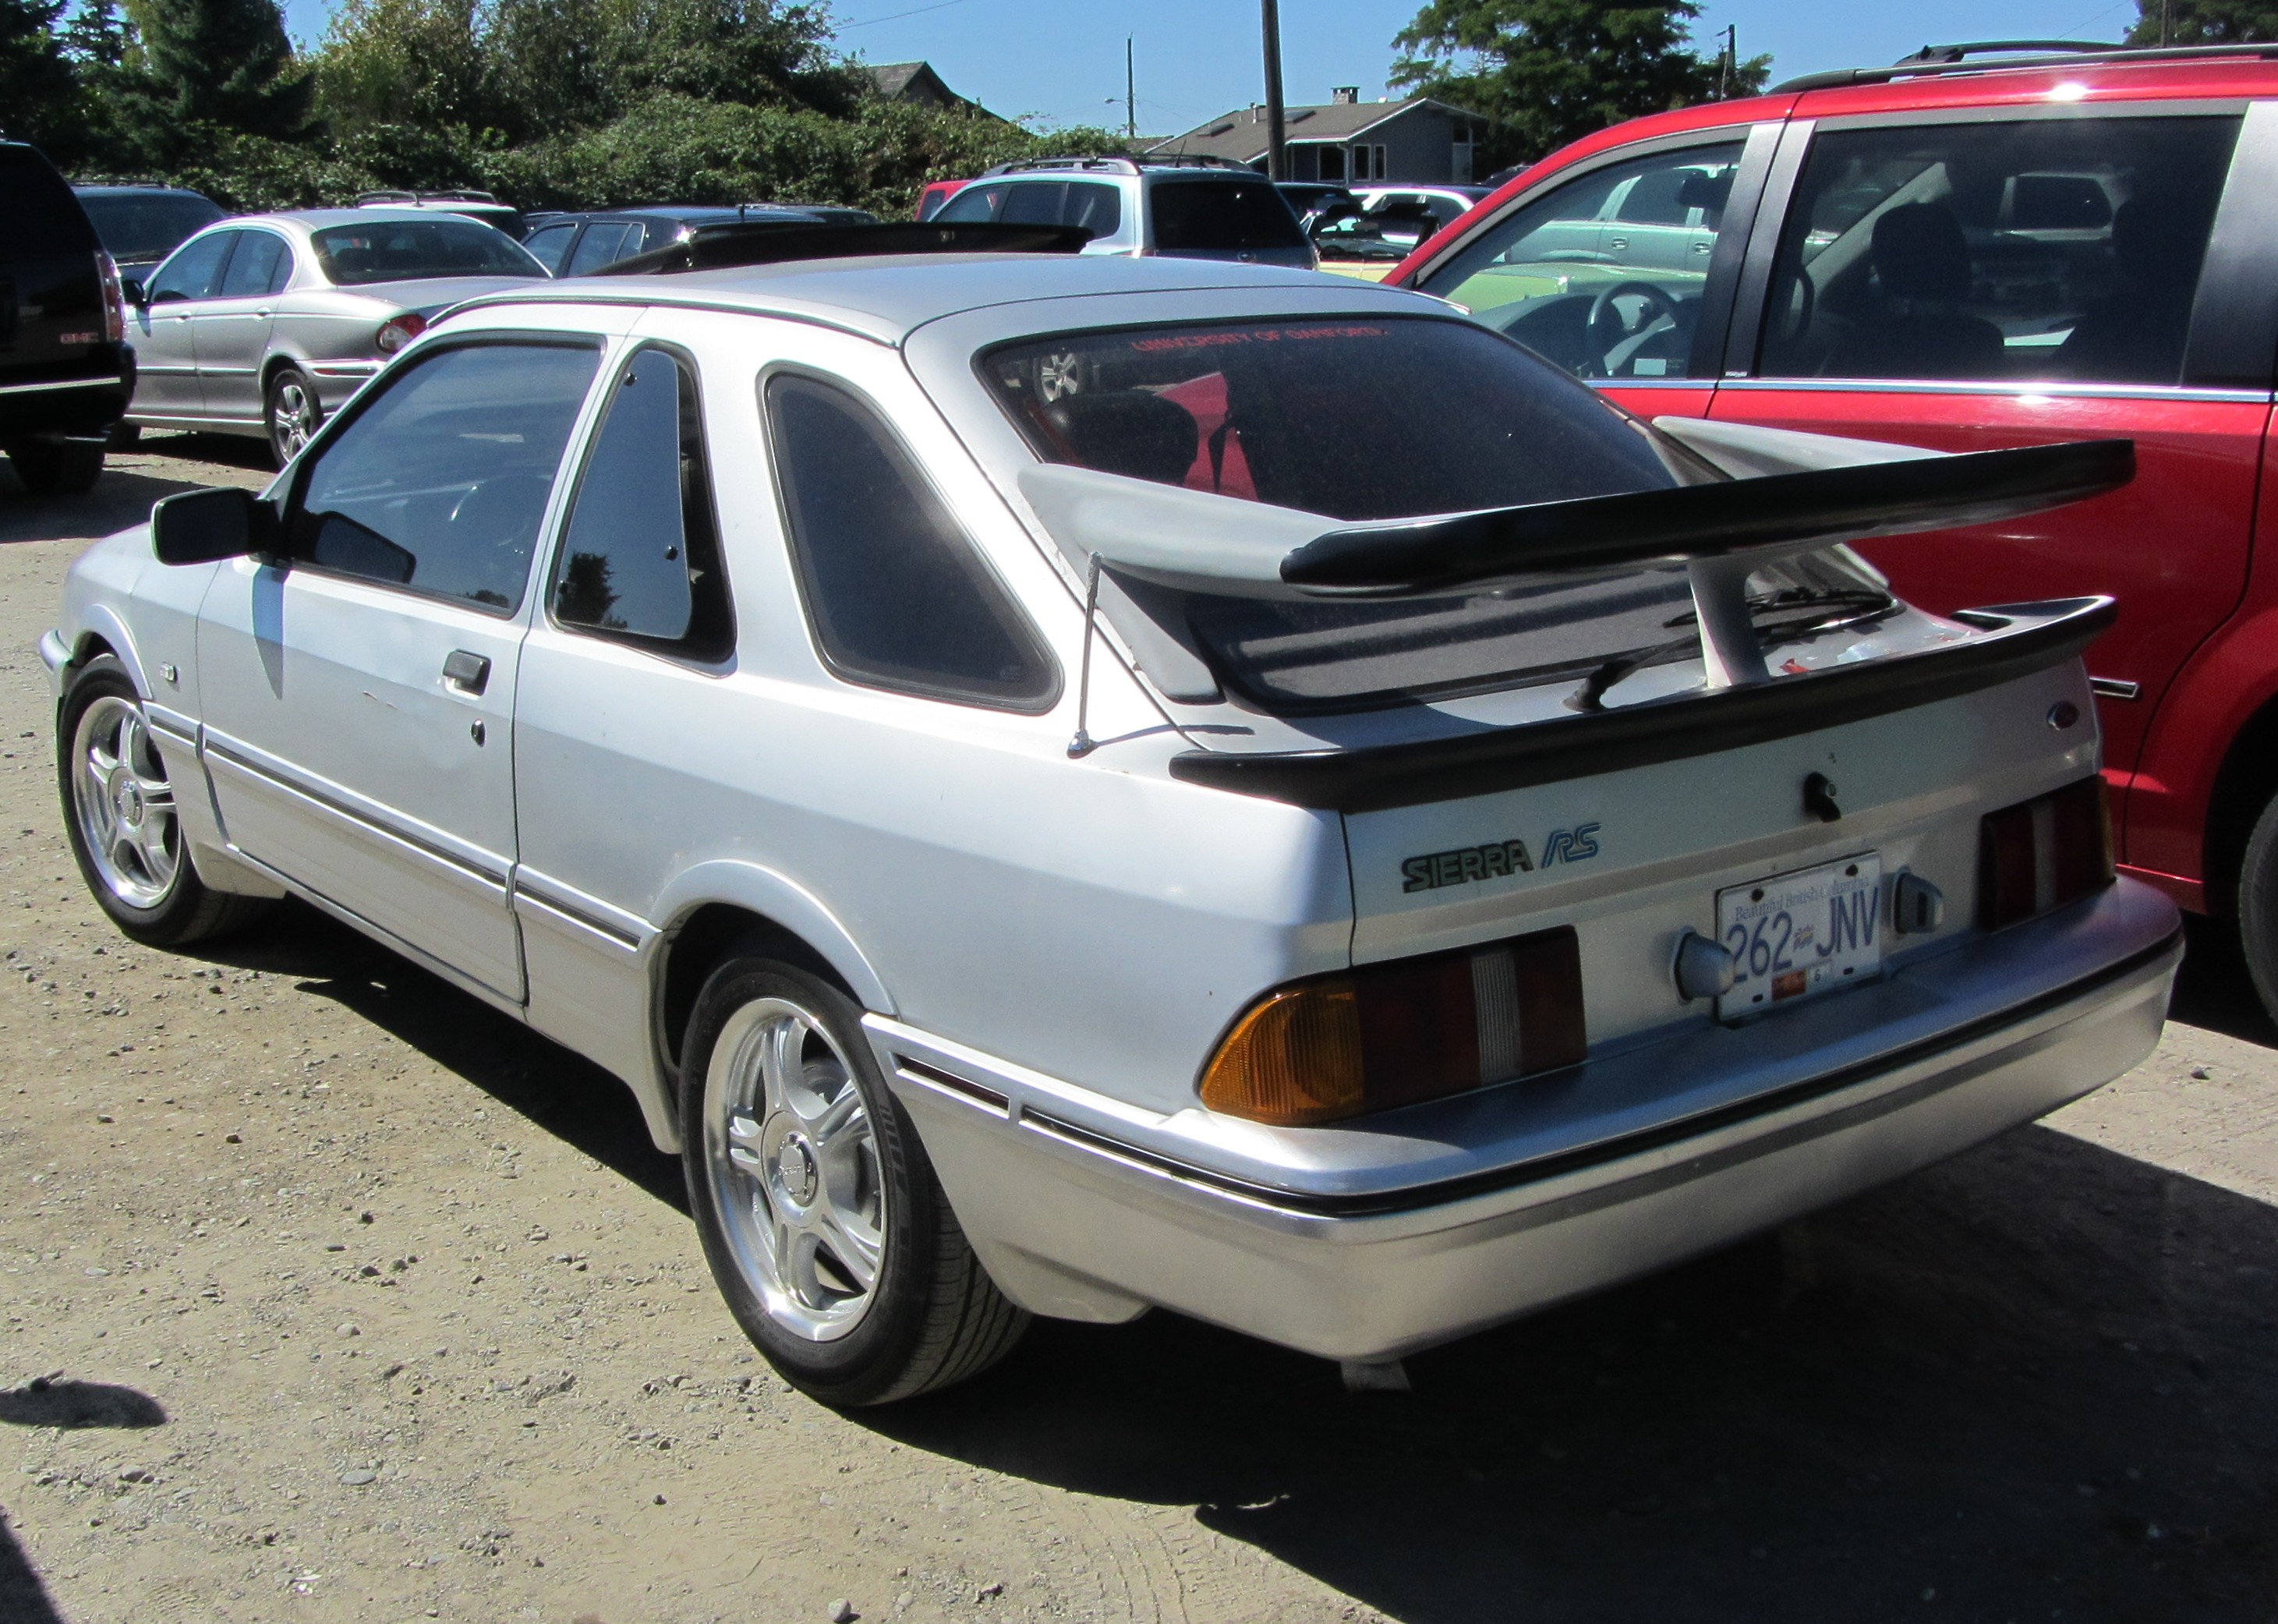 Ford Sierra photo 16